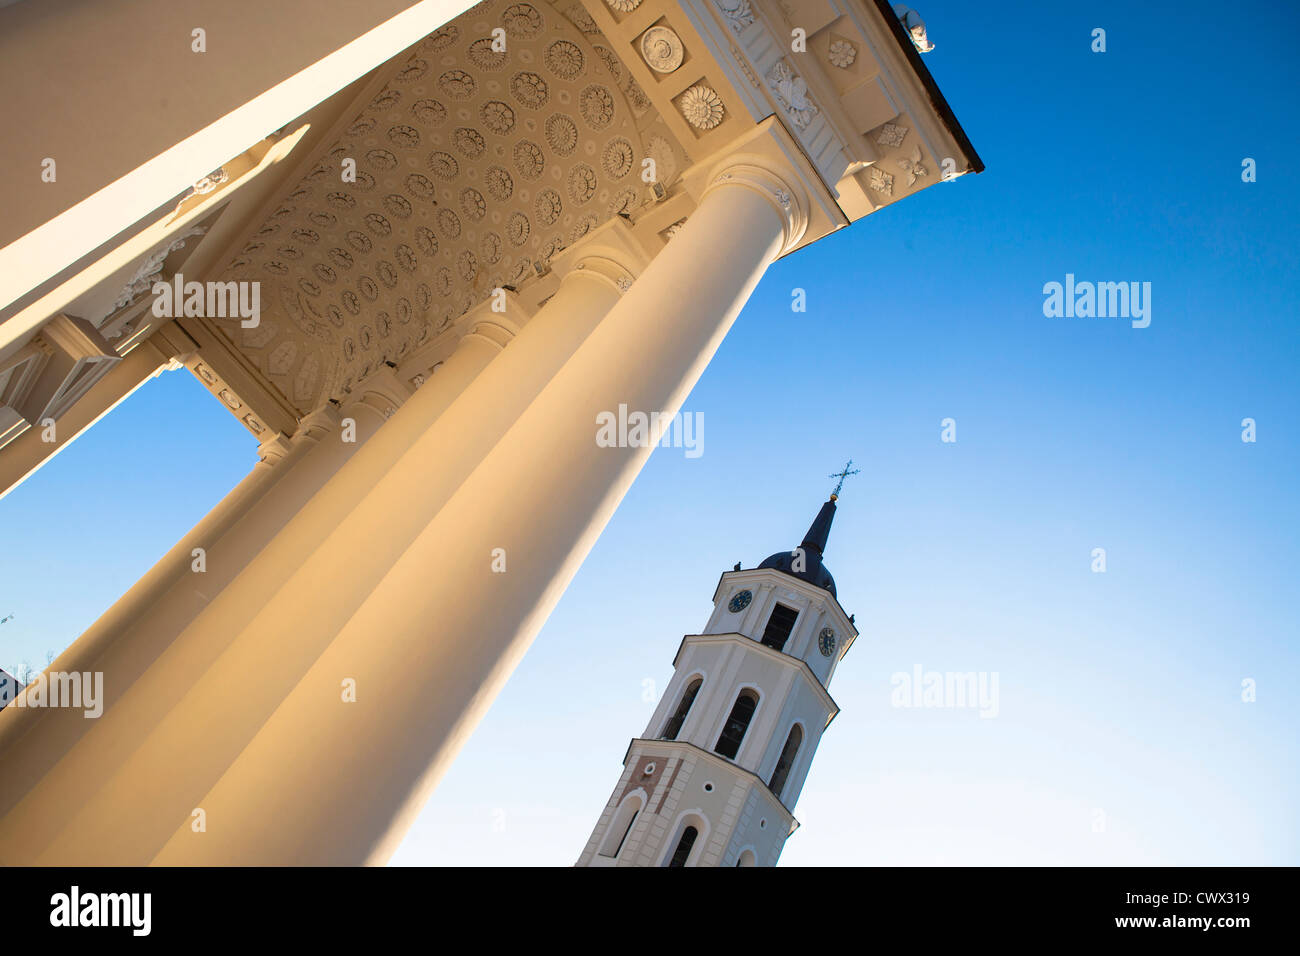 Pillars and tower against blue sky - Stock Image